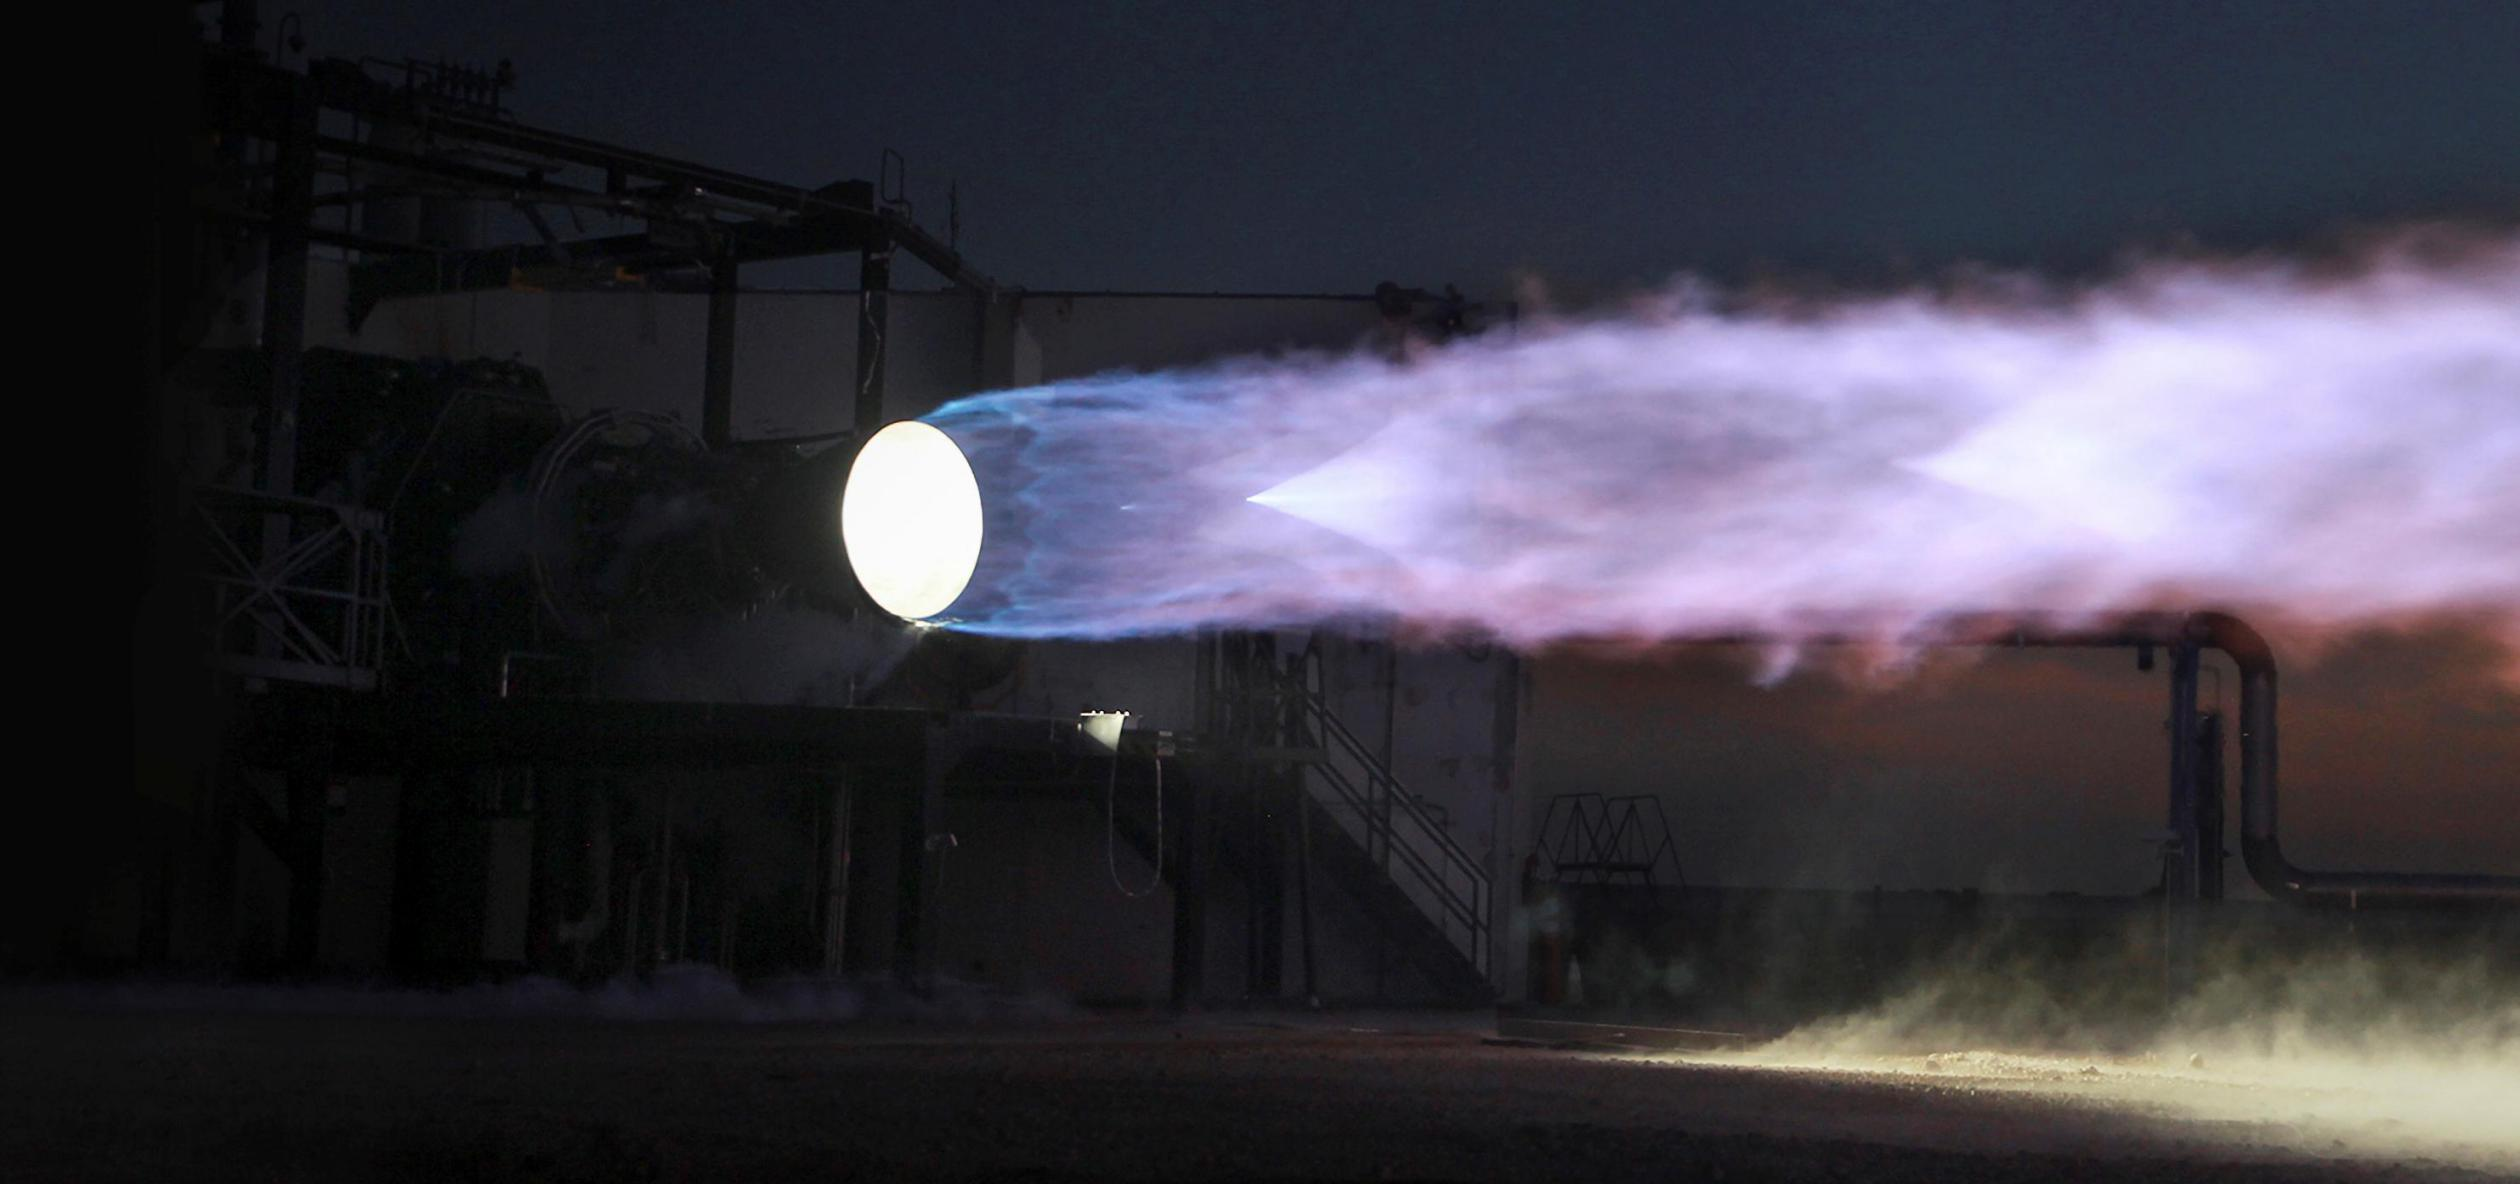 SpaceX Starship Raptor Engine